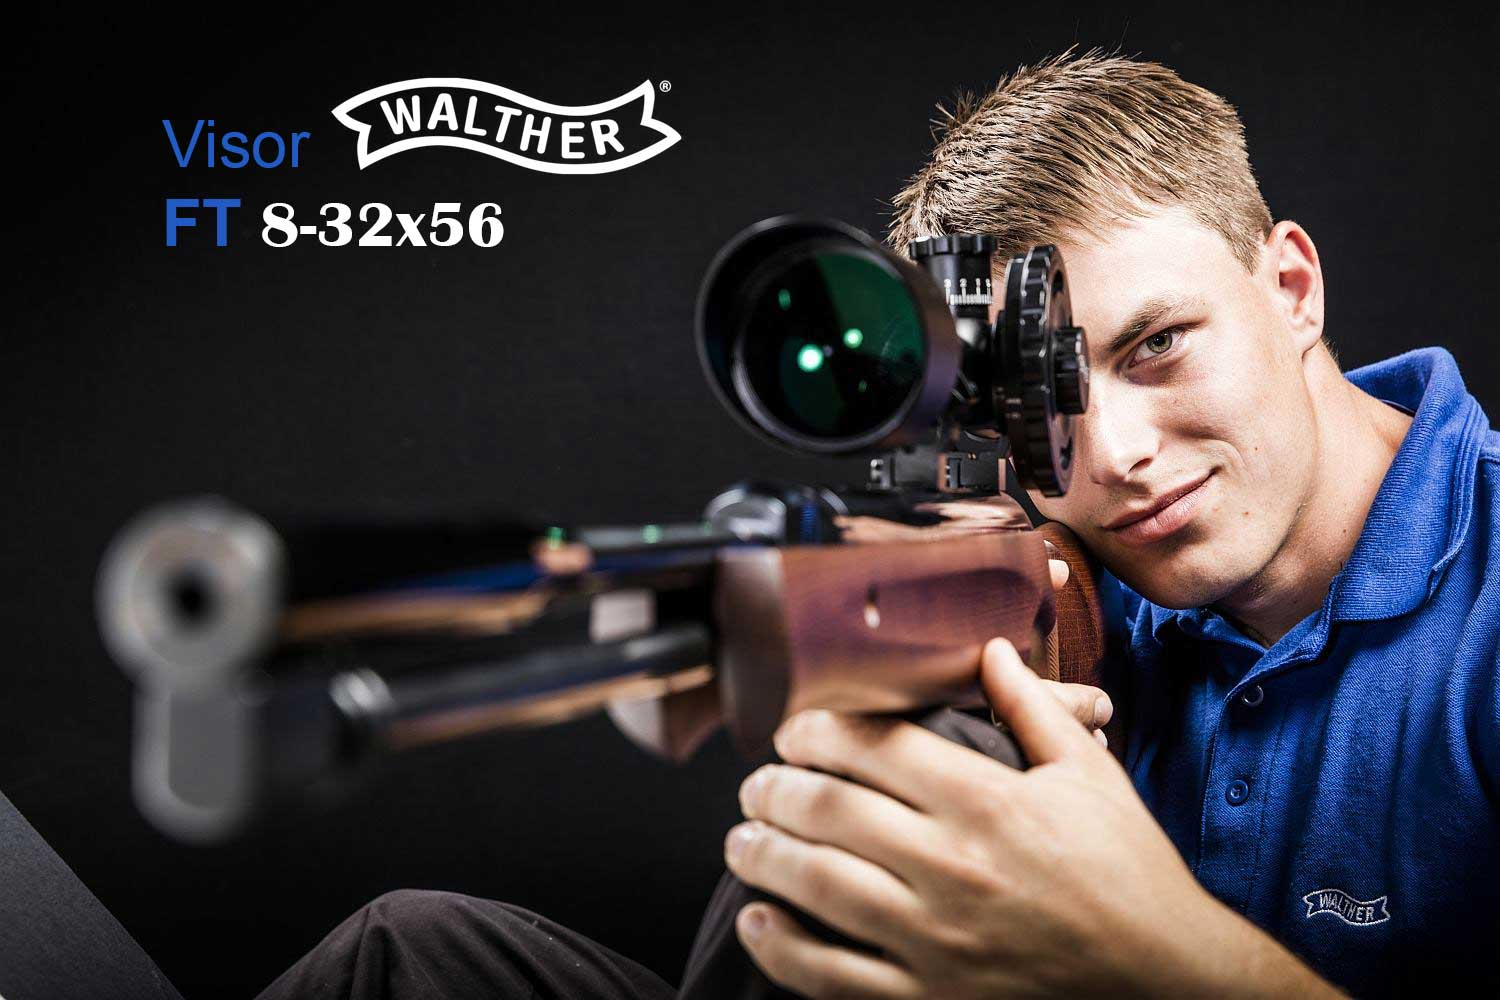 Walther-FT-8-32x56